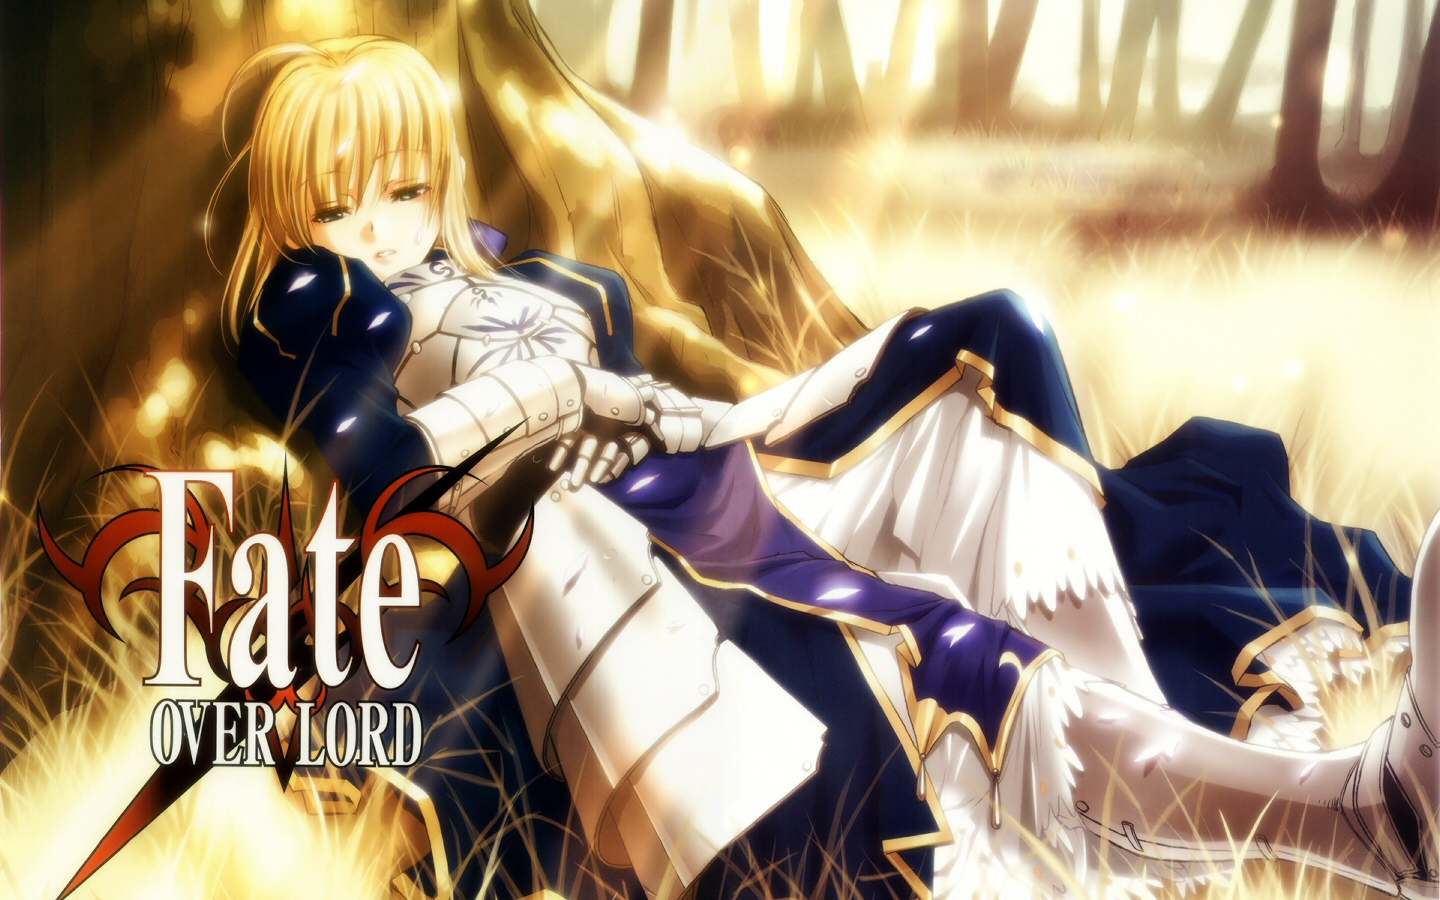 Download Muryou Anime Fate Stay Night Saber Wallpaper 1440x900 1440x900